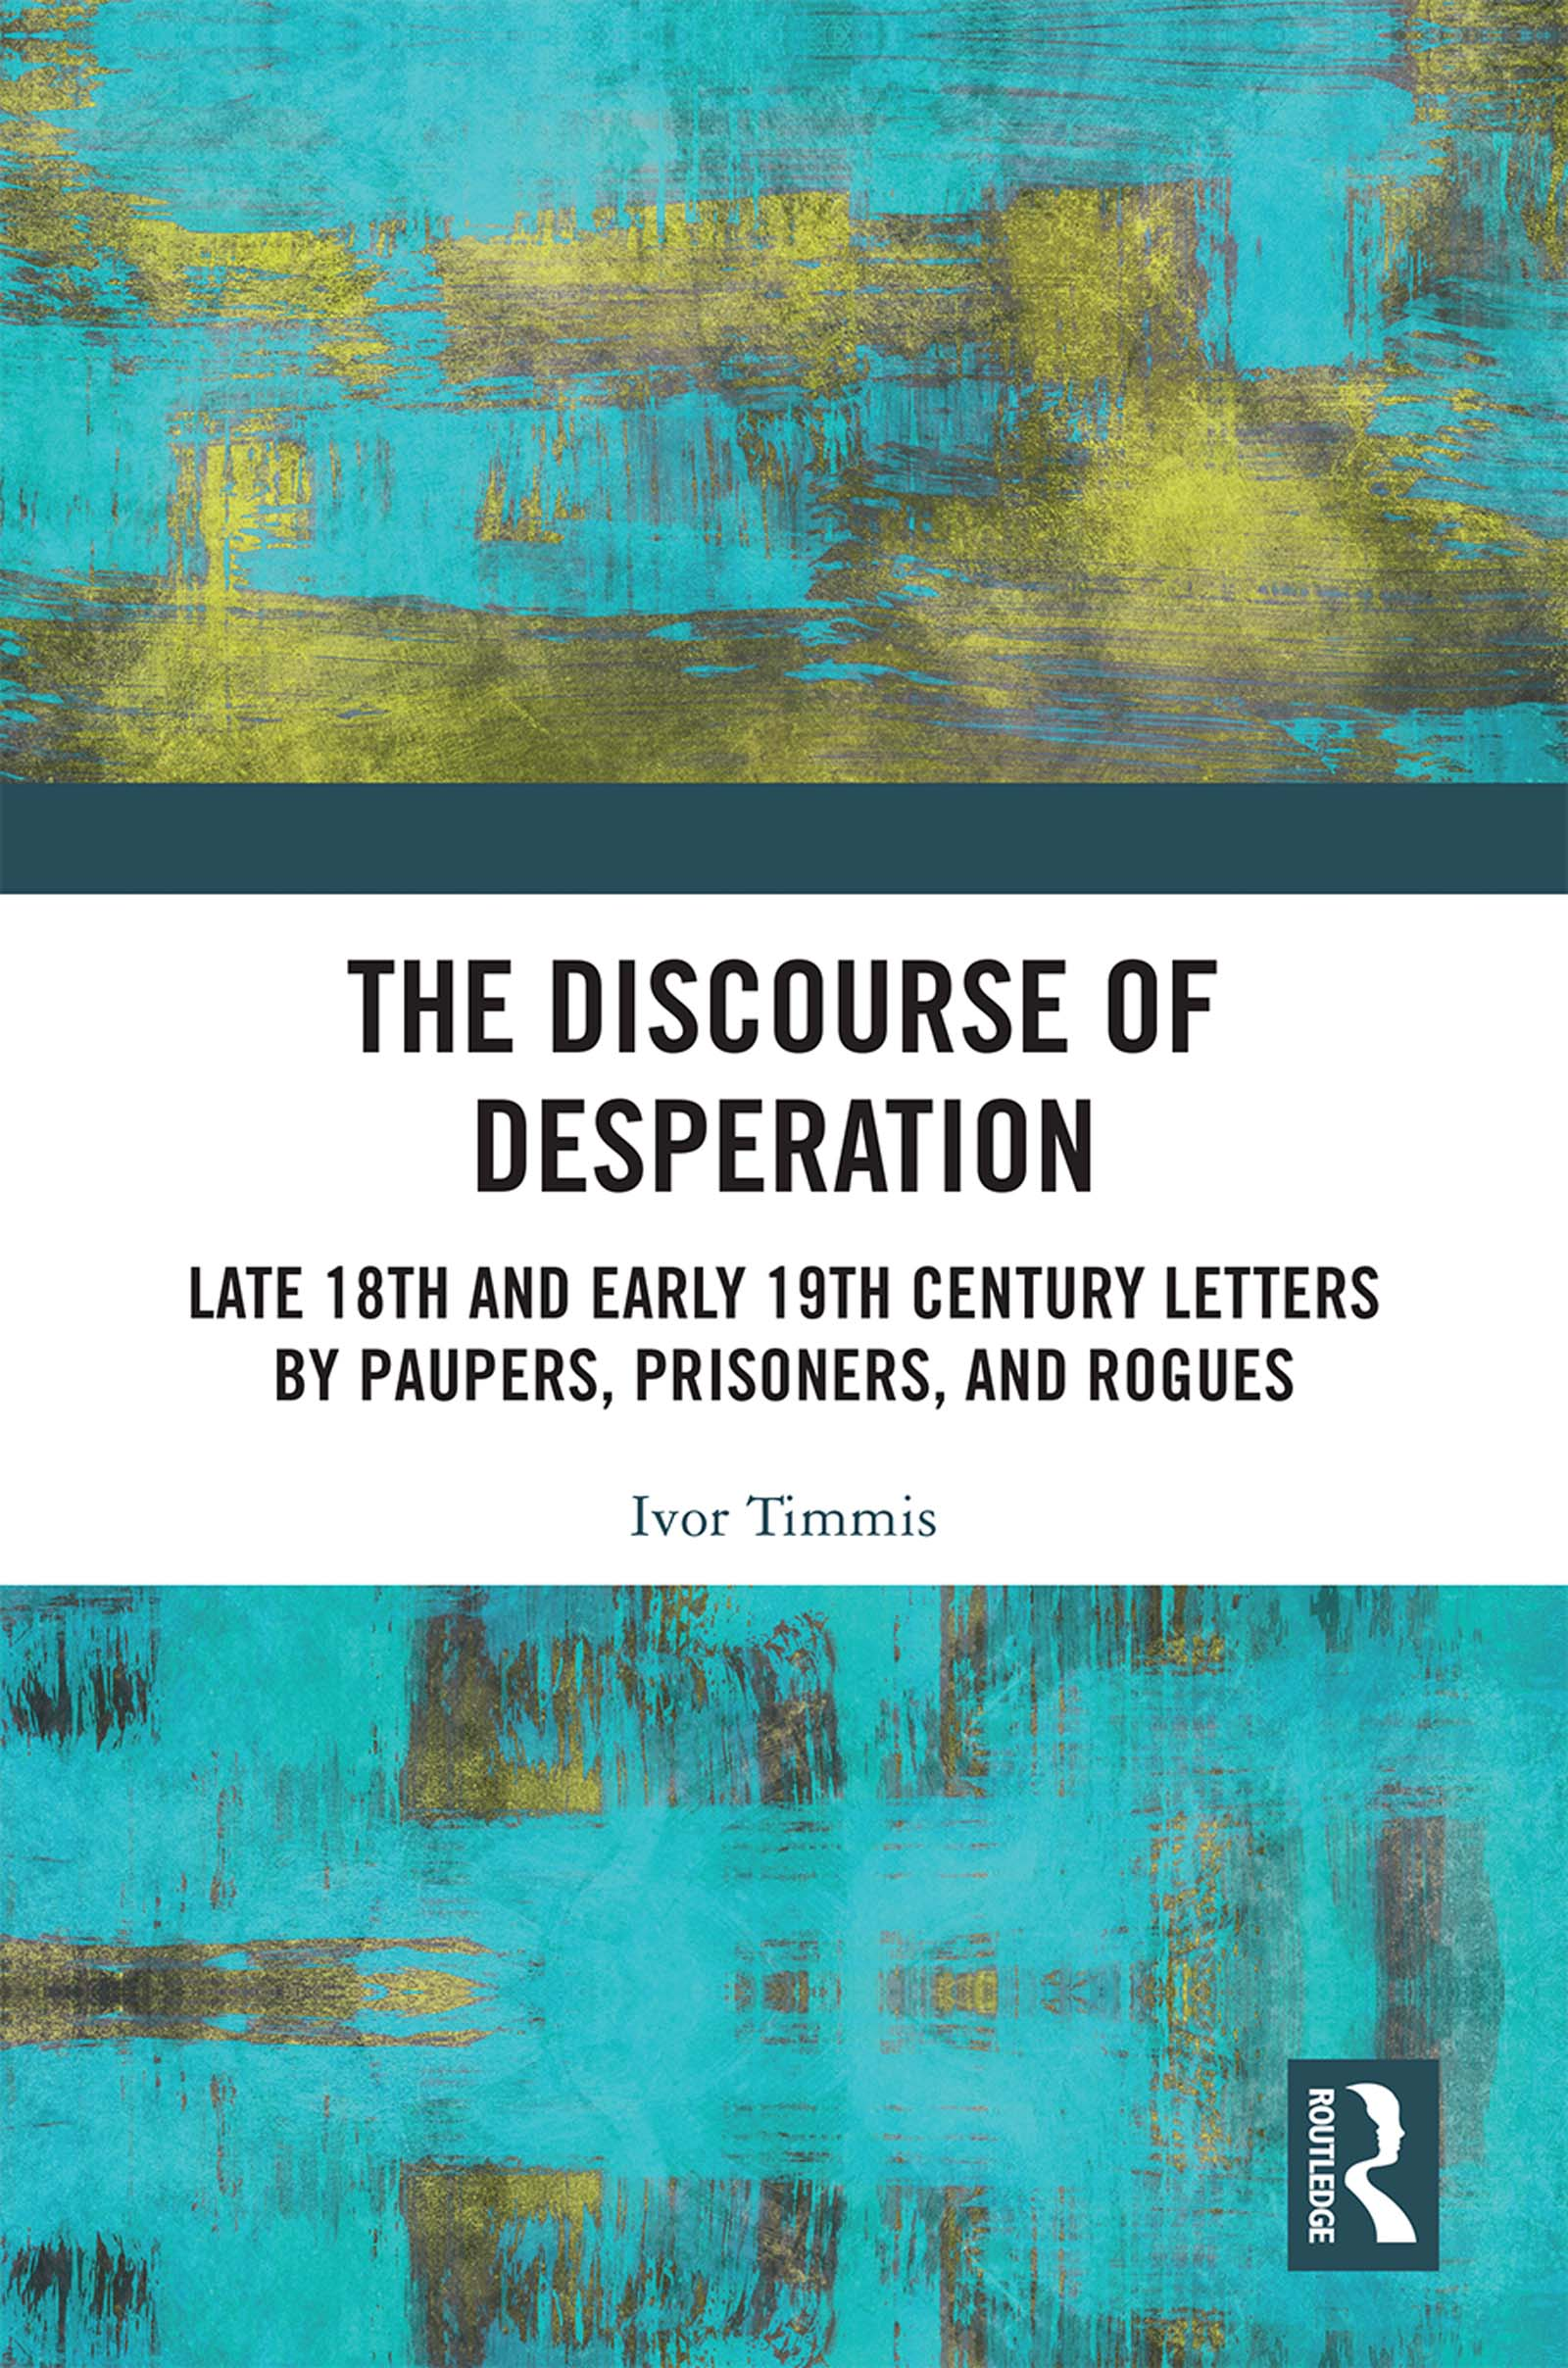 The Discourse of Desperation